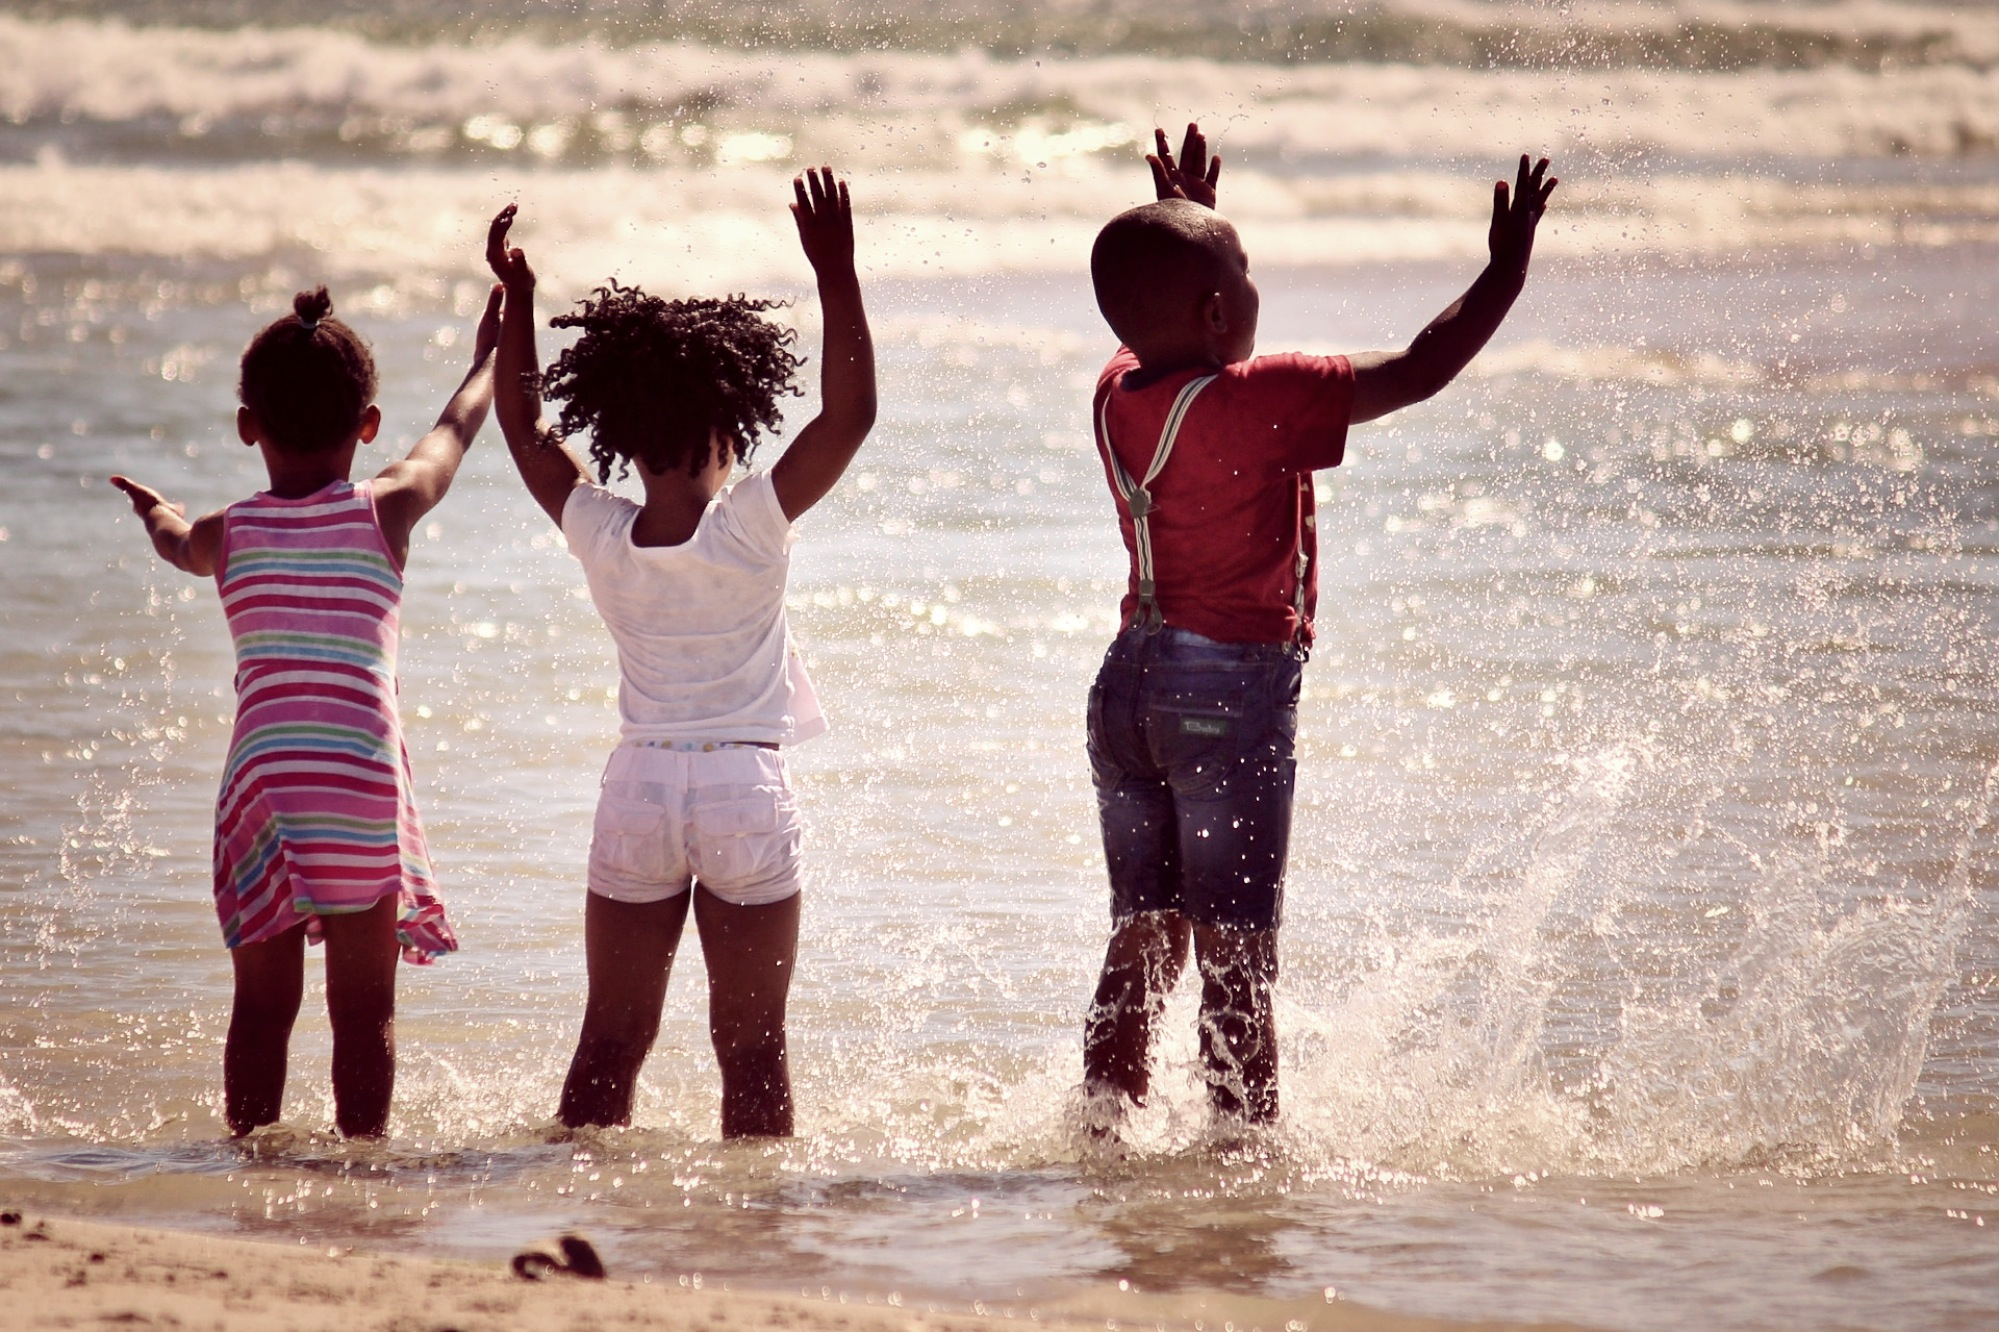 childrens-safe-house-child-abuse-give-cape-town